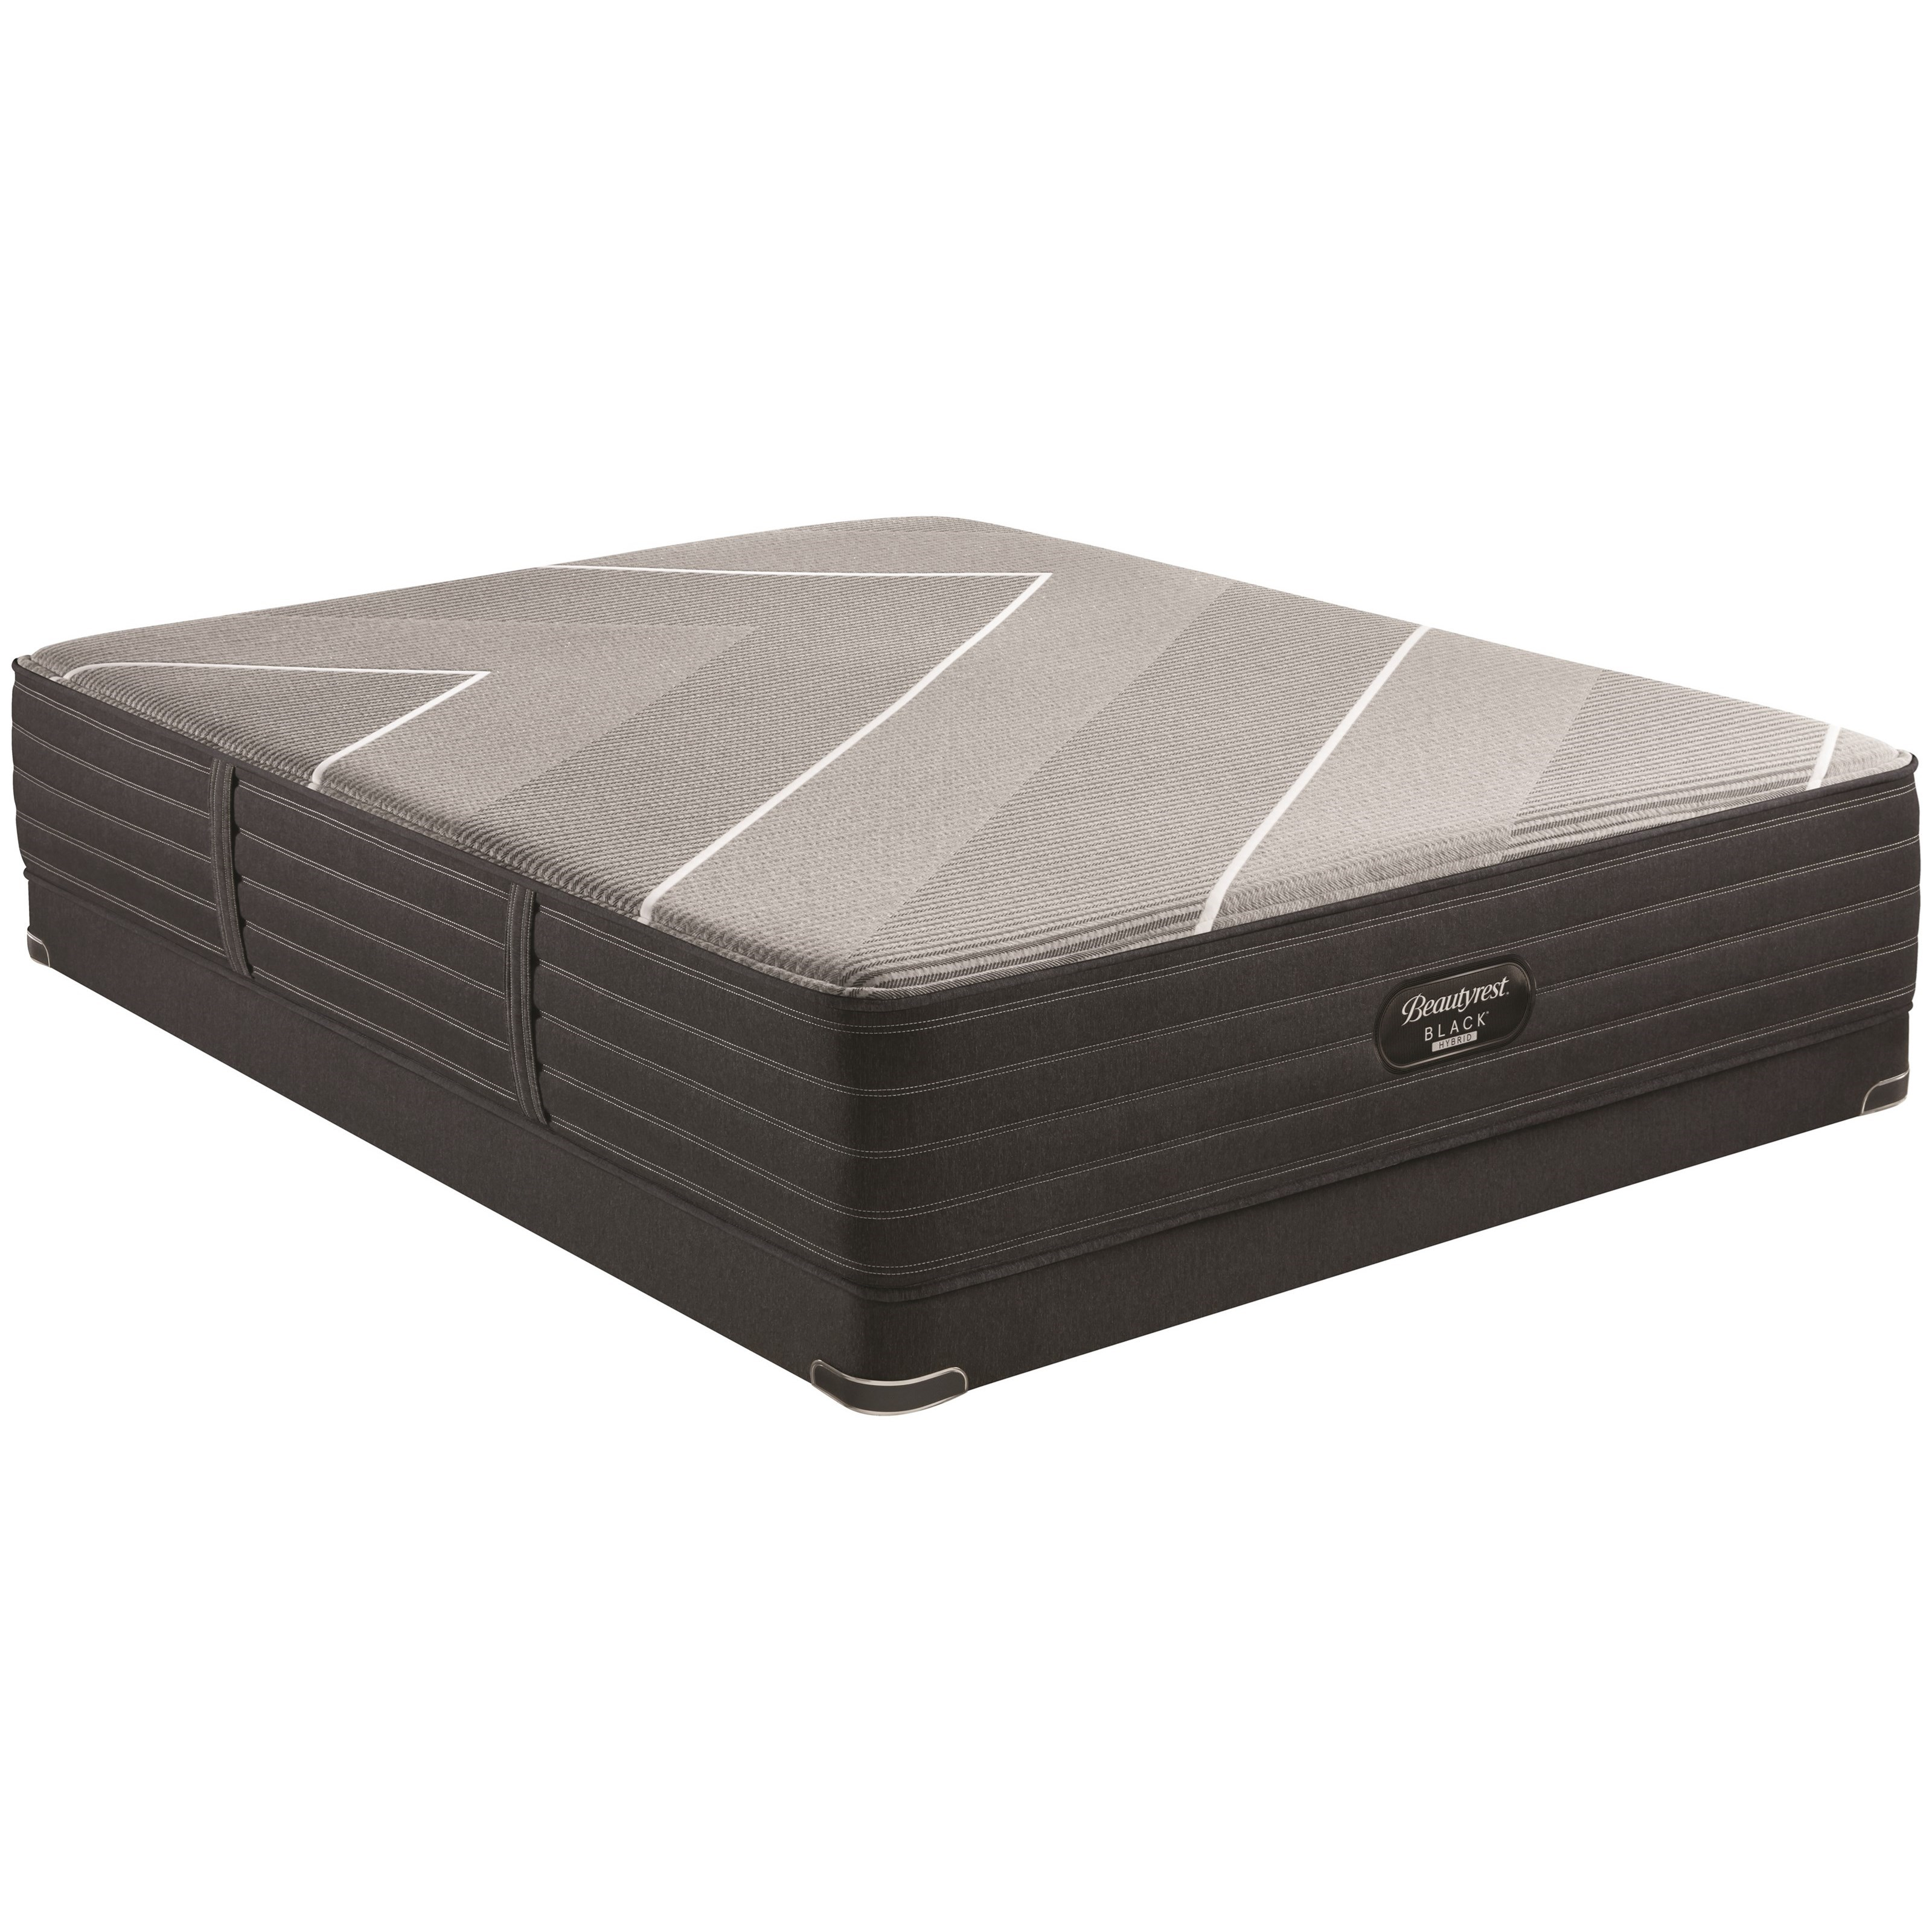 "X-Class Hybrid Medium Queen 13 1/2"" Medium Feel Hybrid LP Set by Beautyrest at Walker's Mattress"